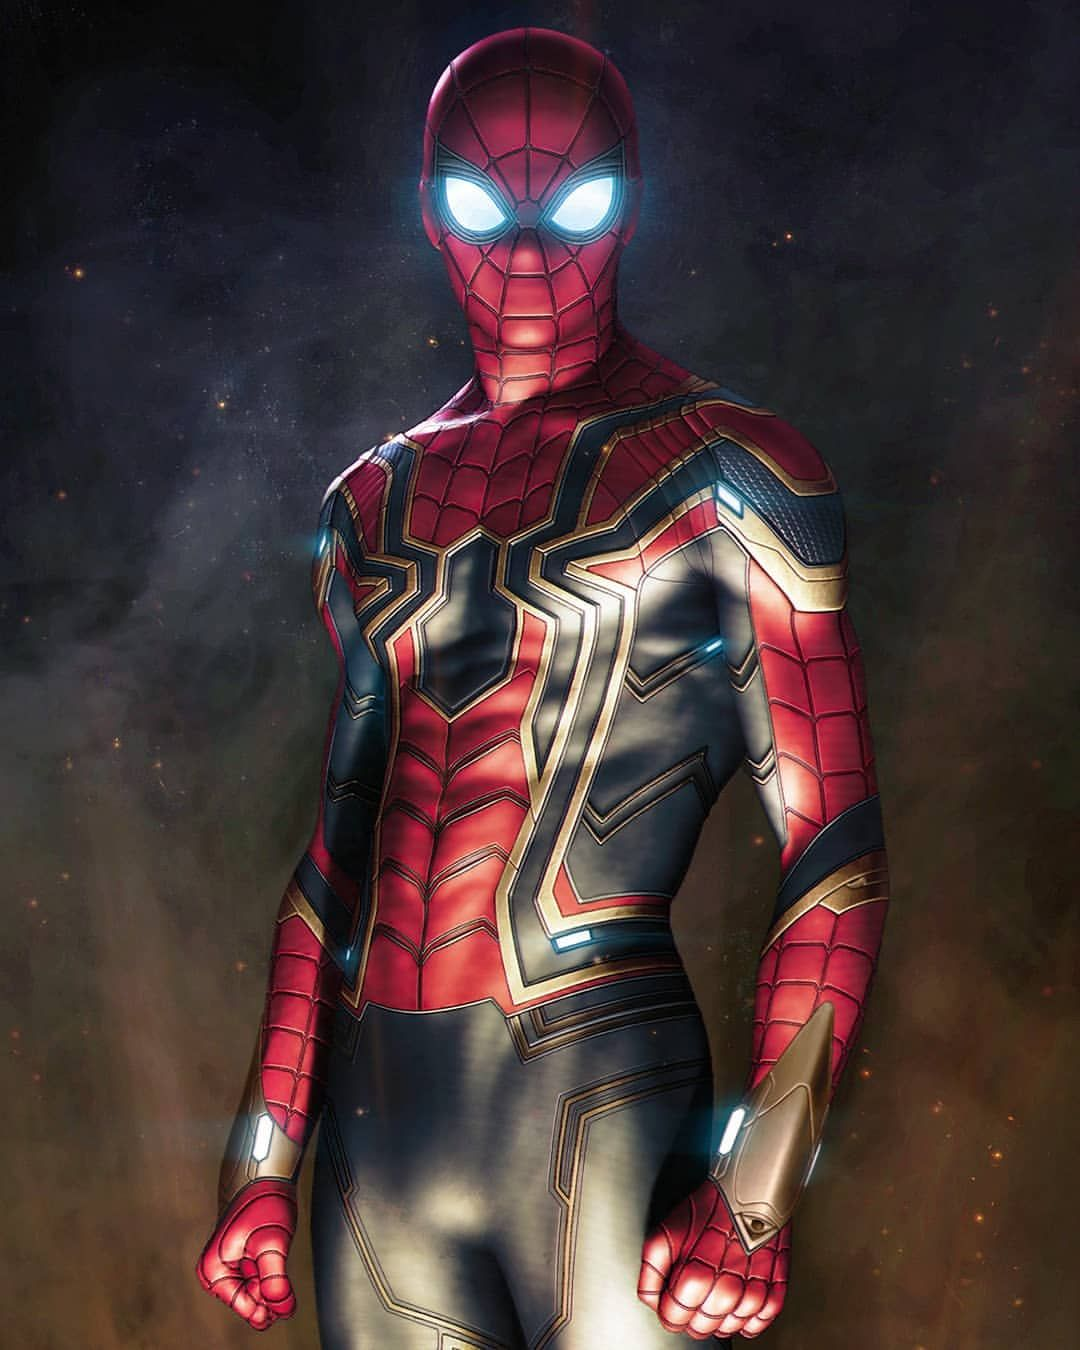 The fictional character SpiderMan a comic book superhero created by Stan Lee and Steve Ditko and featured in Marvel Comics publications has currently appeared in